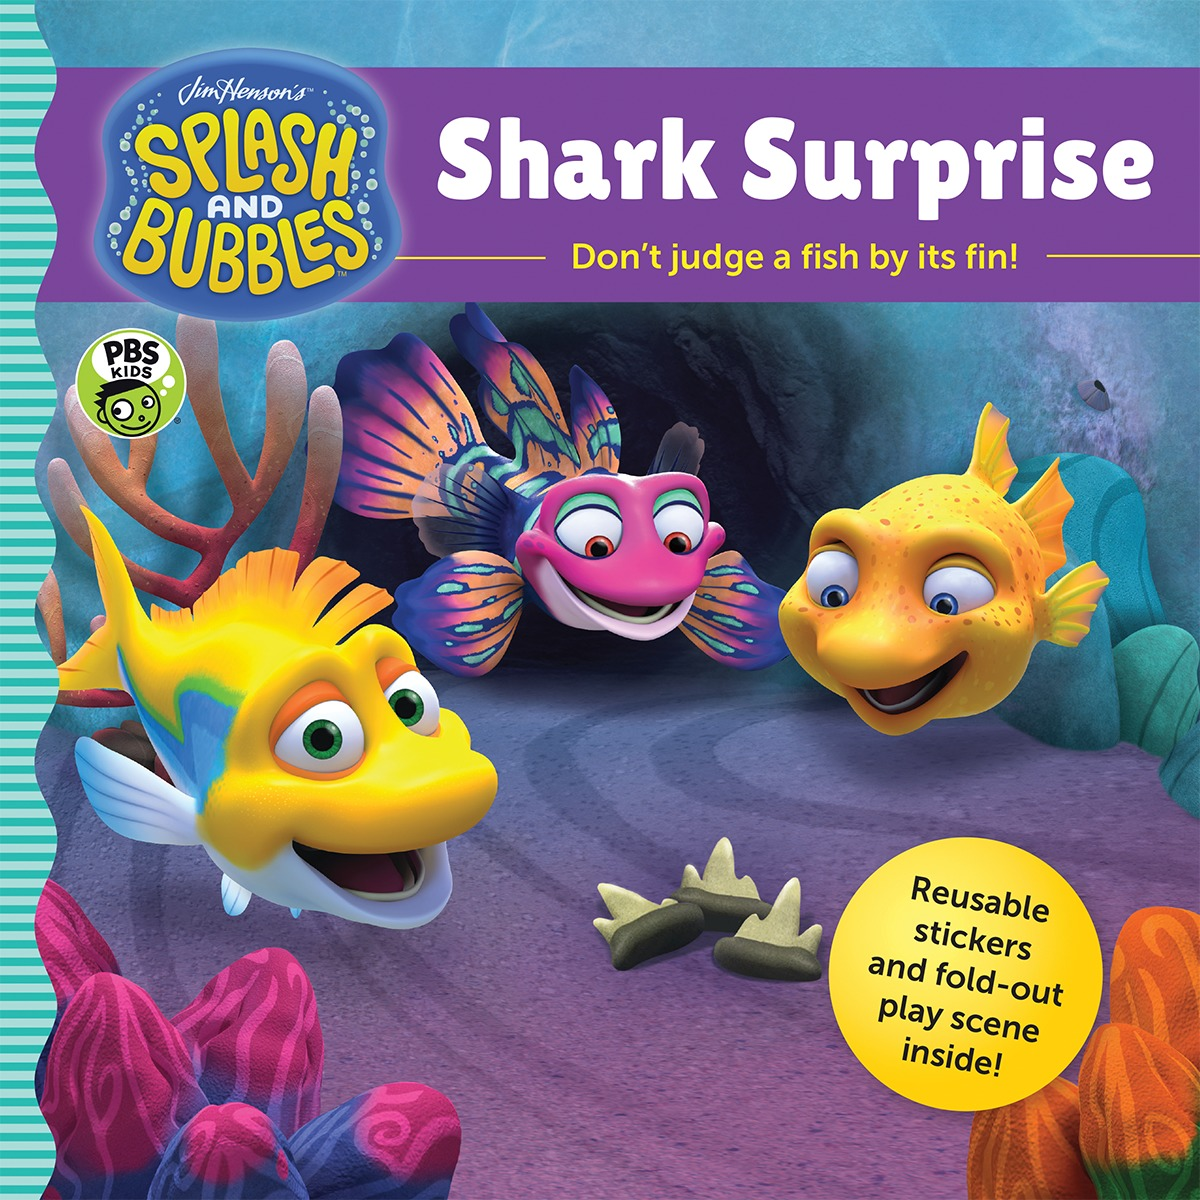 Splash and Bubbles: Shark Surprise with sticker play scene-9781328852809